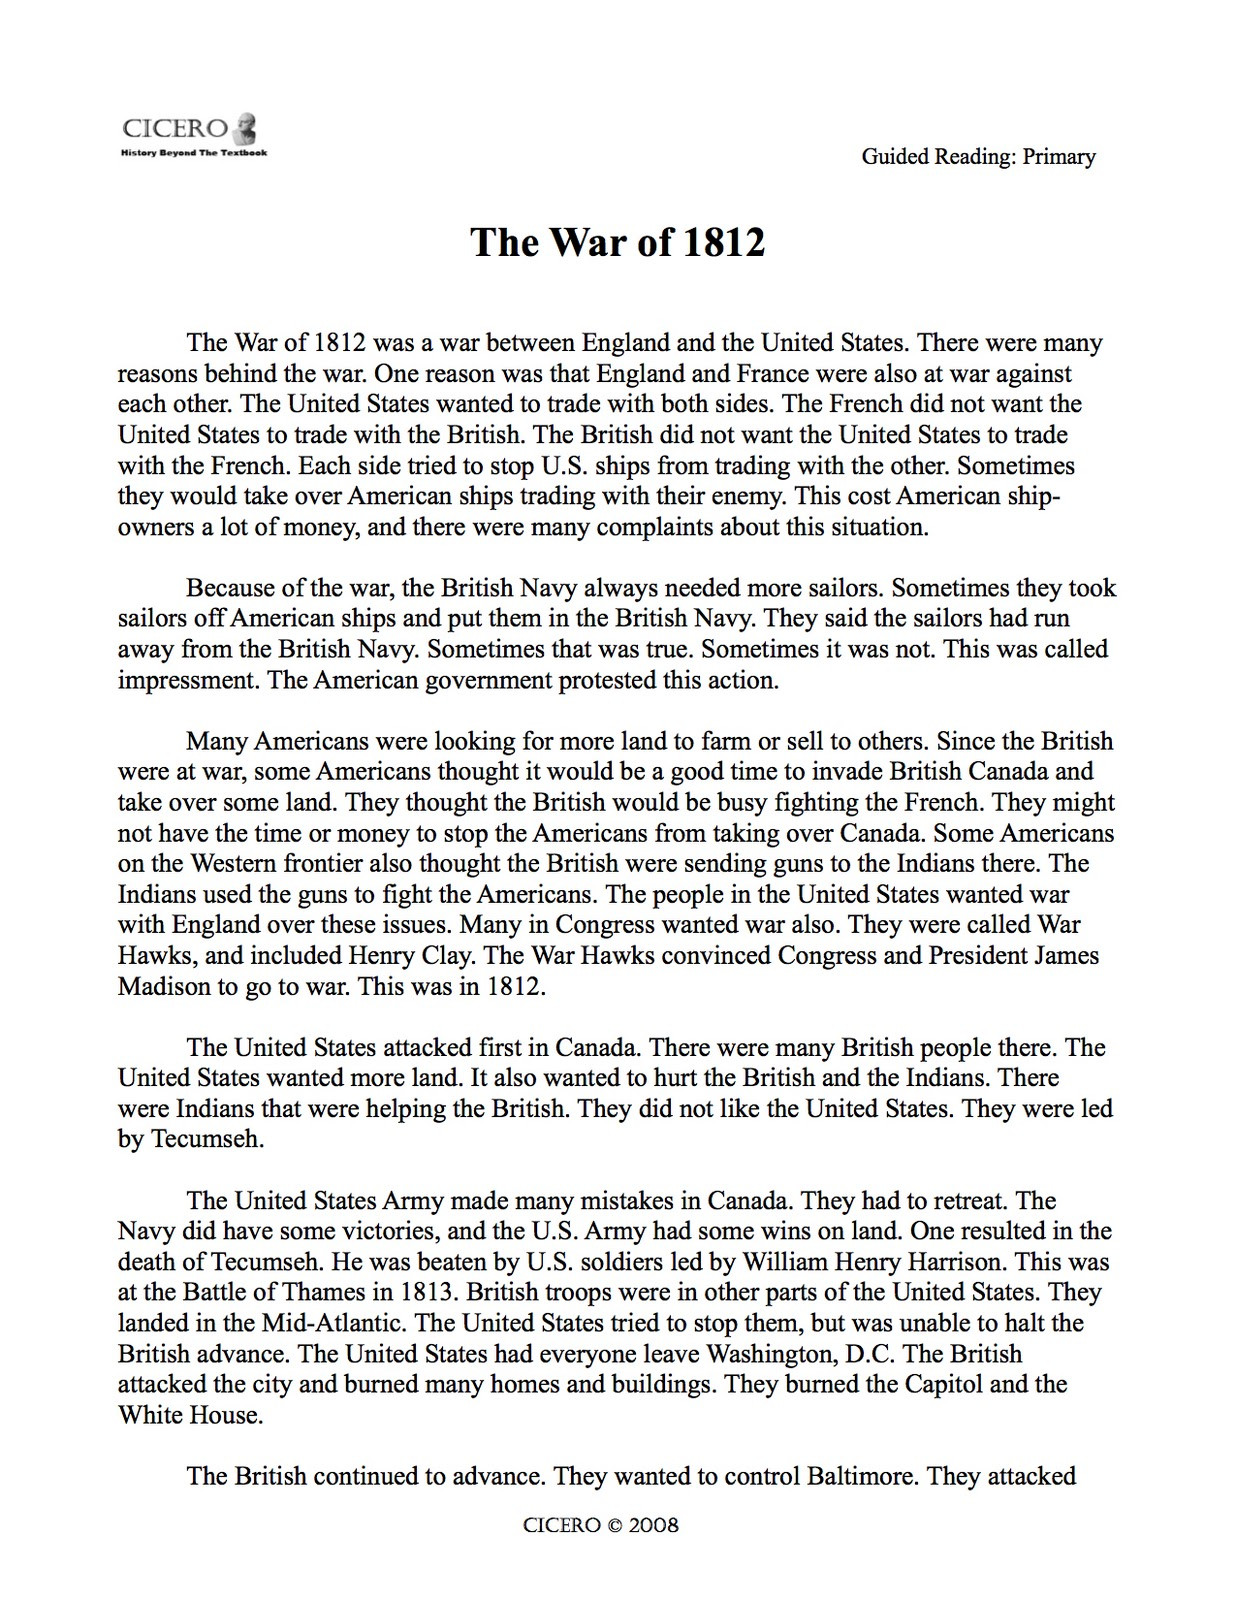 An essay on war of 1812